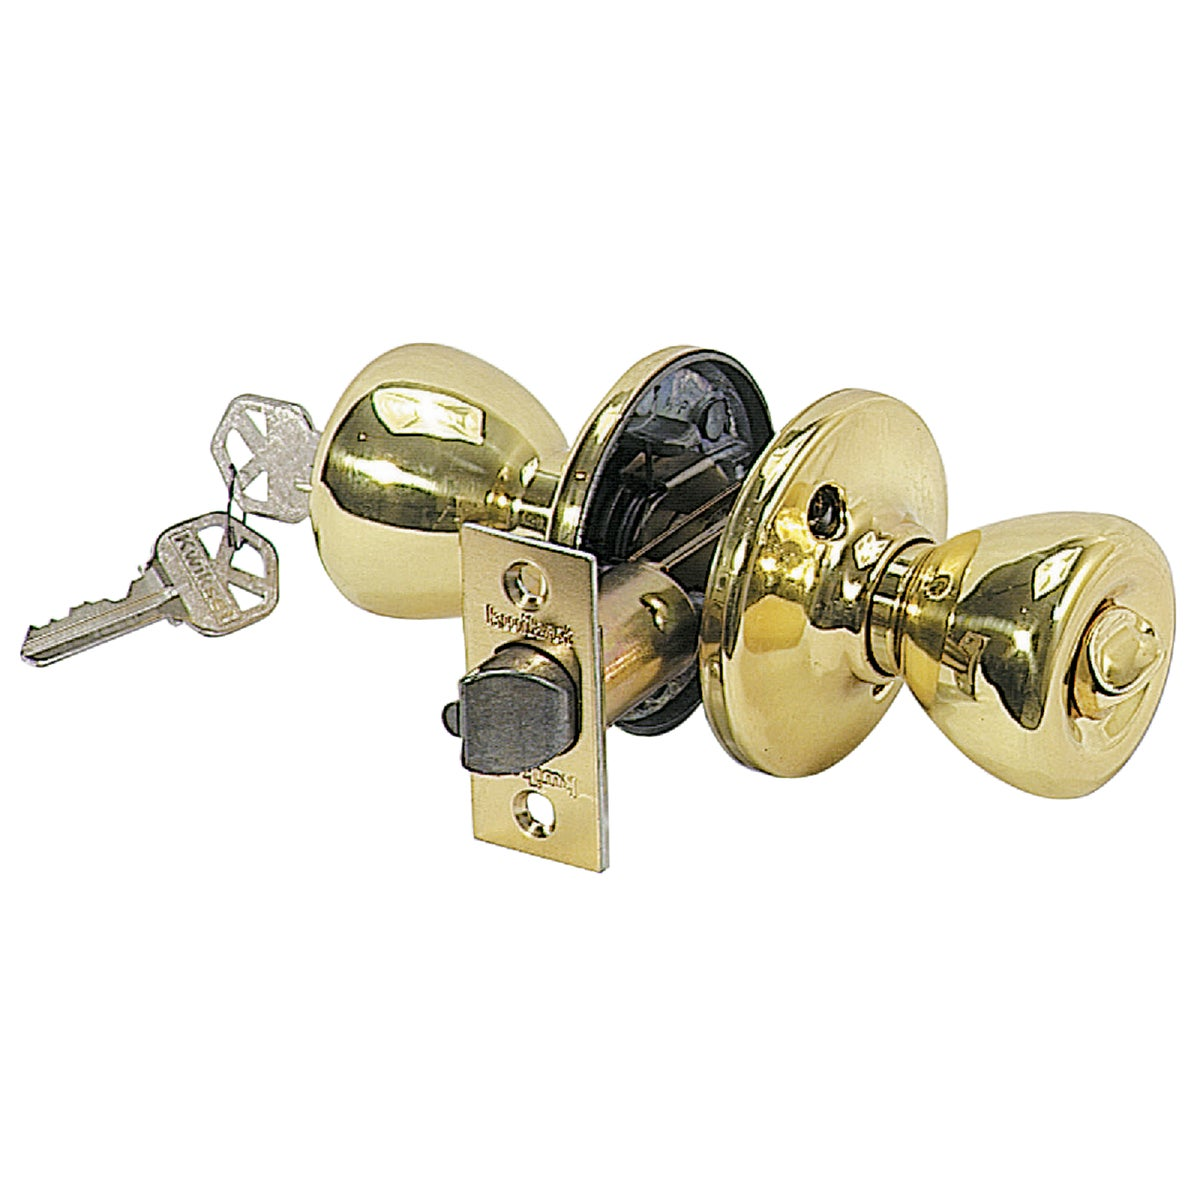 PB BX TYLO ENTRY LOCK - 400T 3 6AL RCS K3 by Kwikset